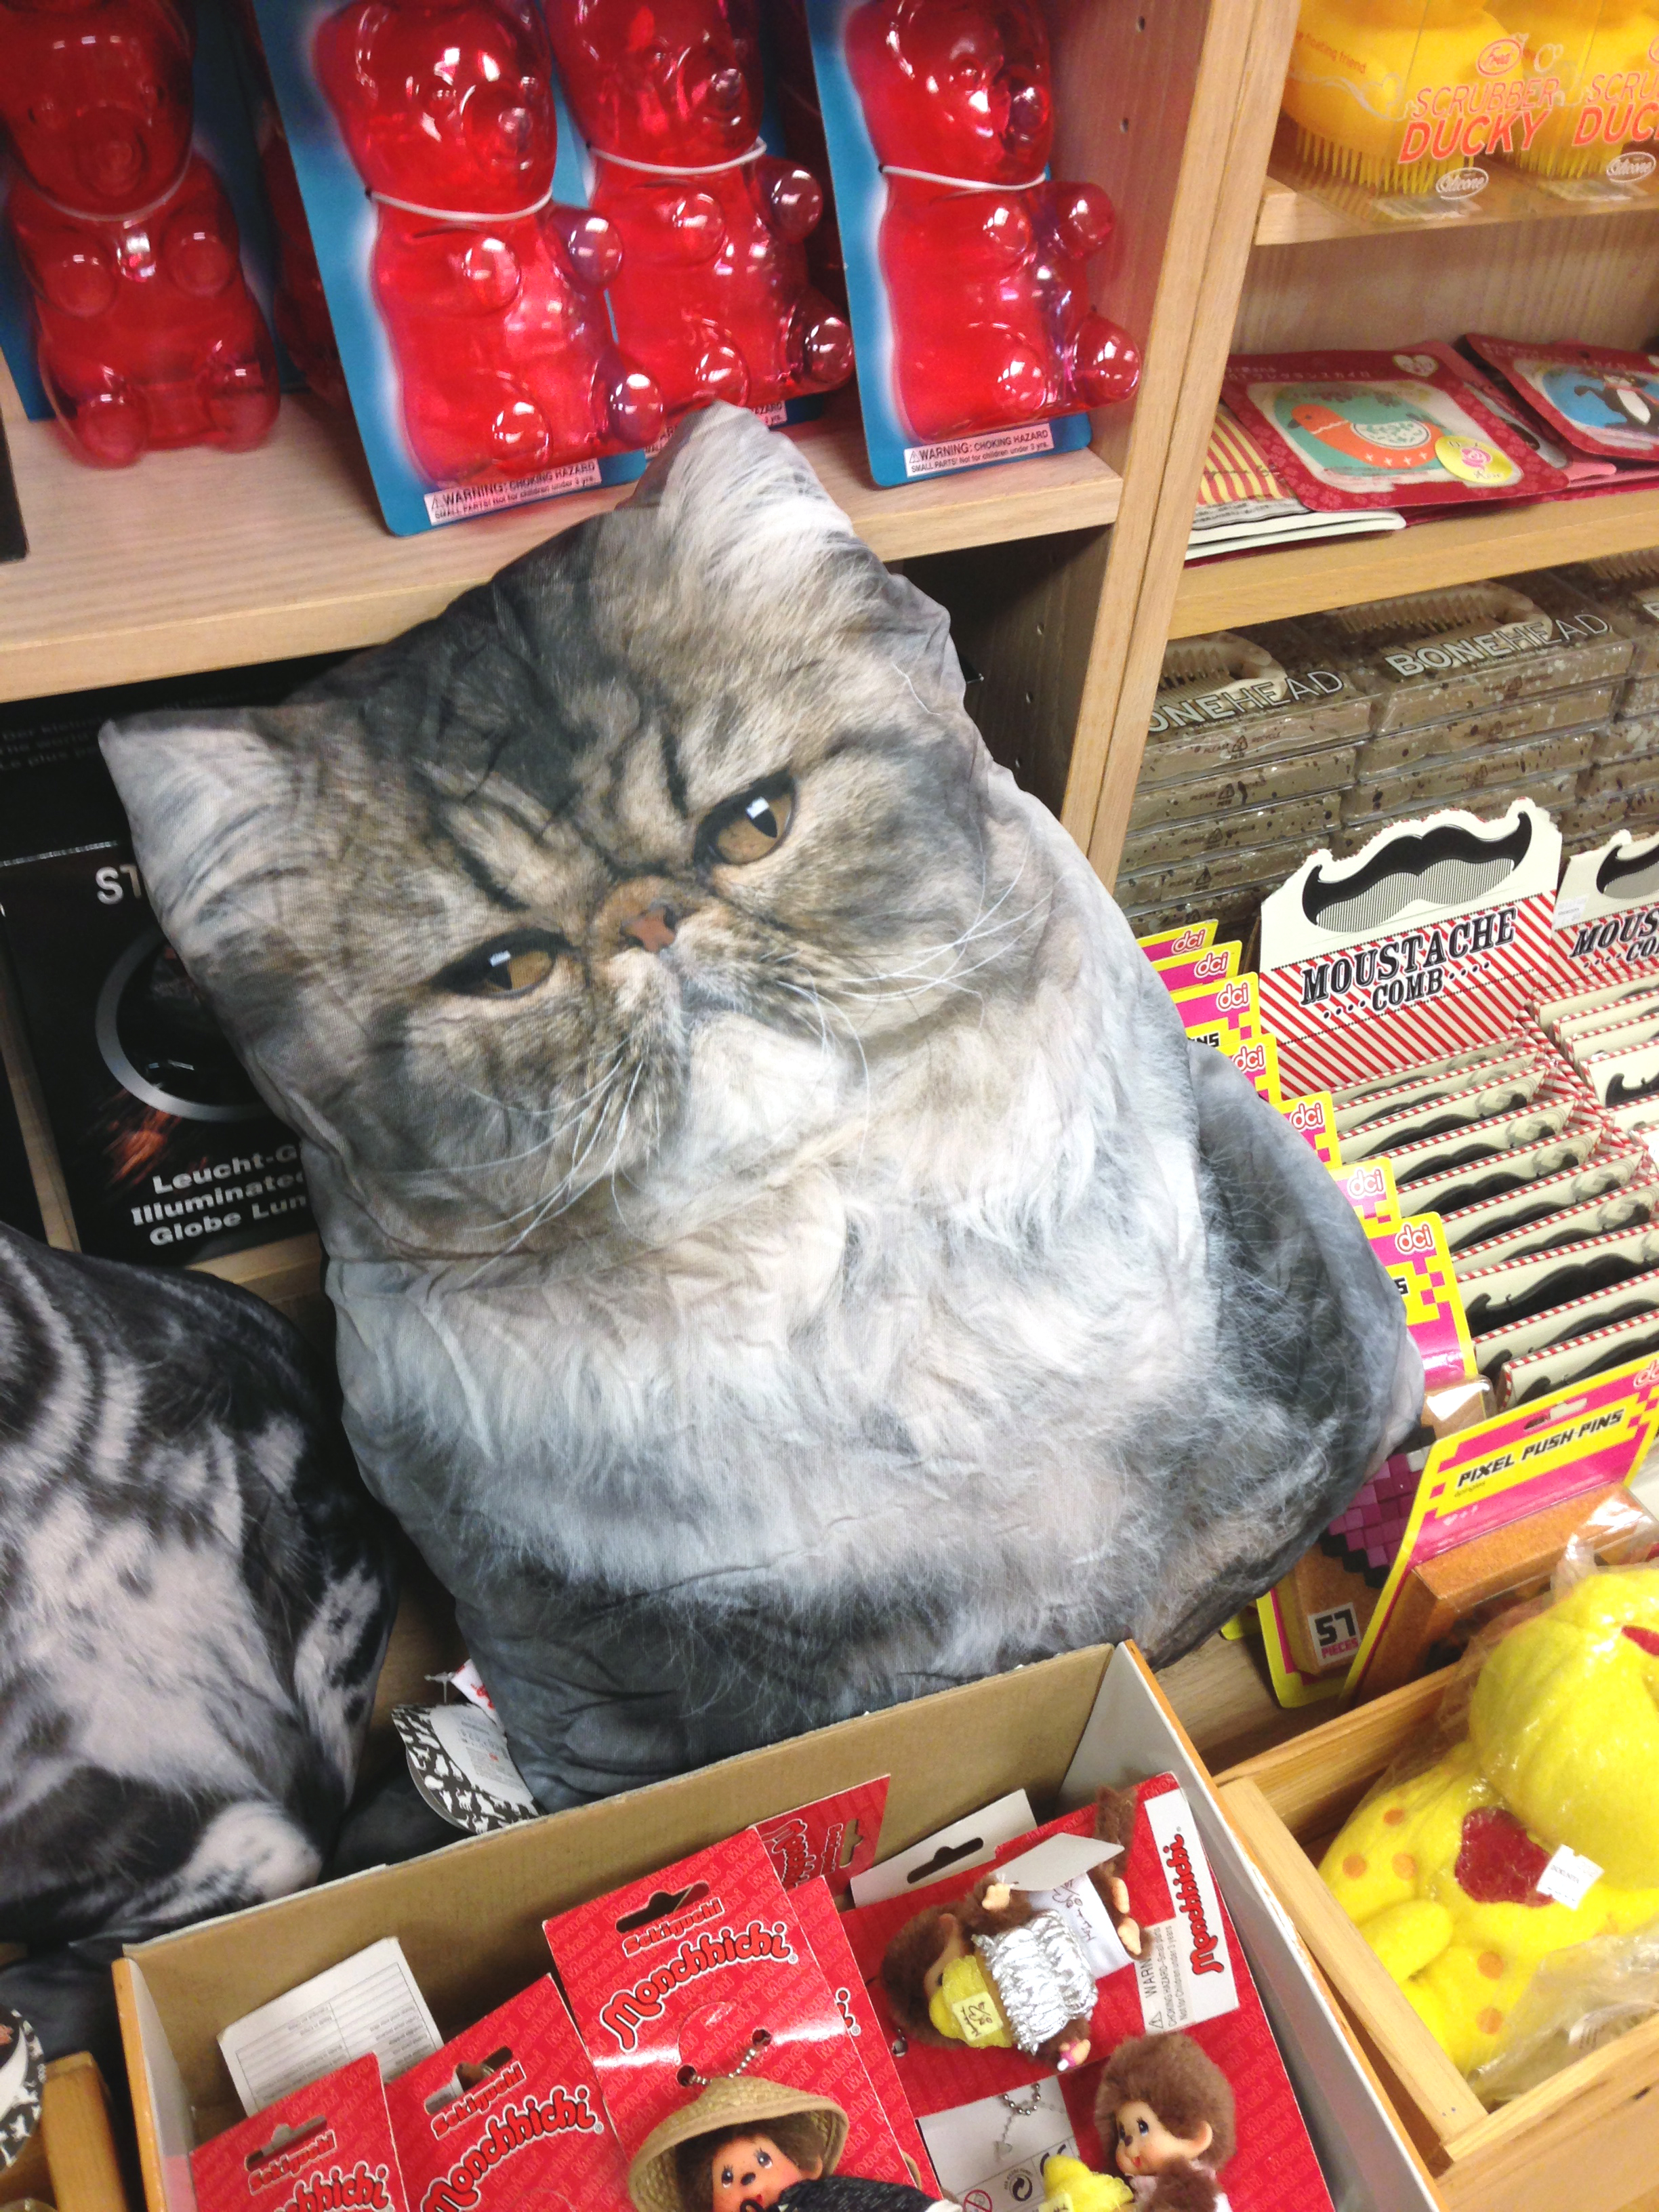 LOLCat pillow and other Japanese oddities